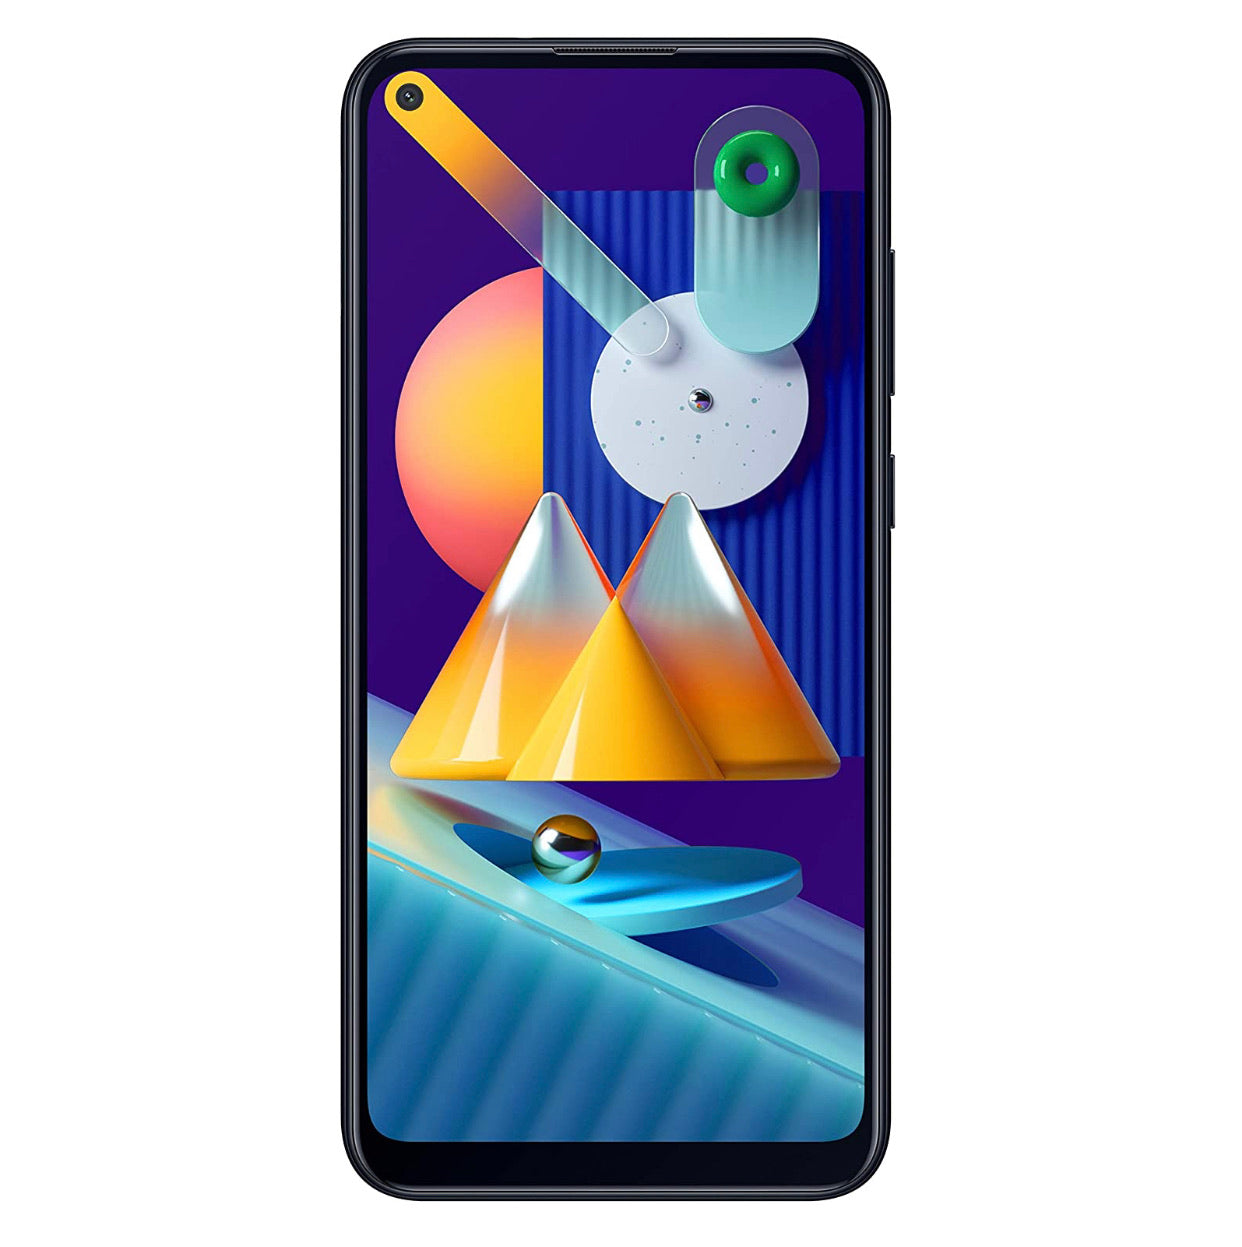 Samsung Galaxy M11 (4GB RAM, 64GB Storage) - E MIRA ROAD